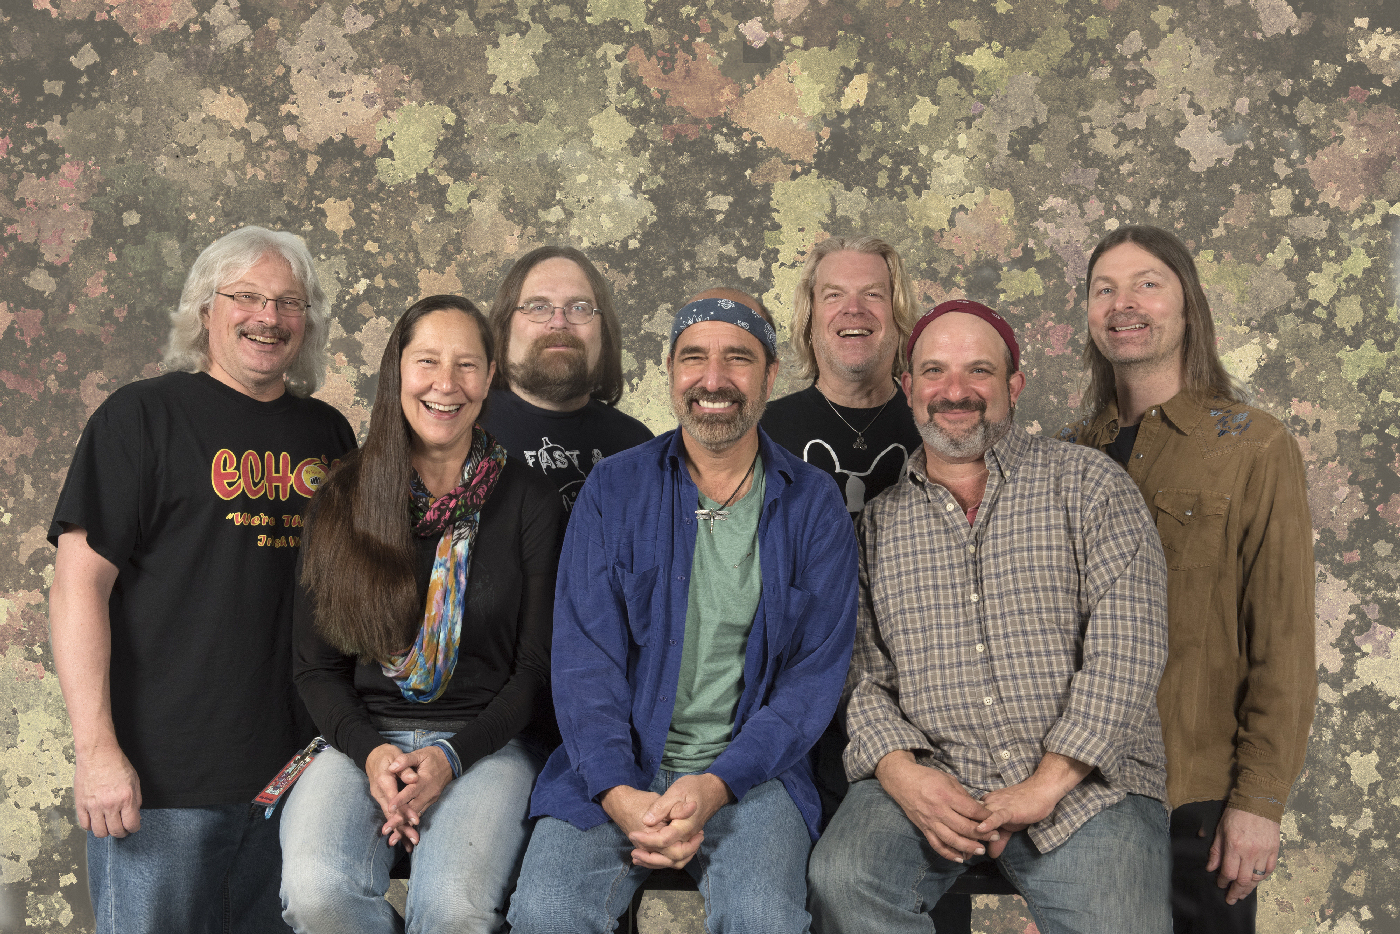 Grateful Dead Concert Experience Coming to Salina